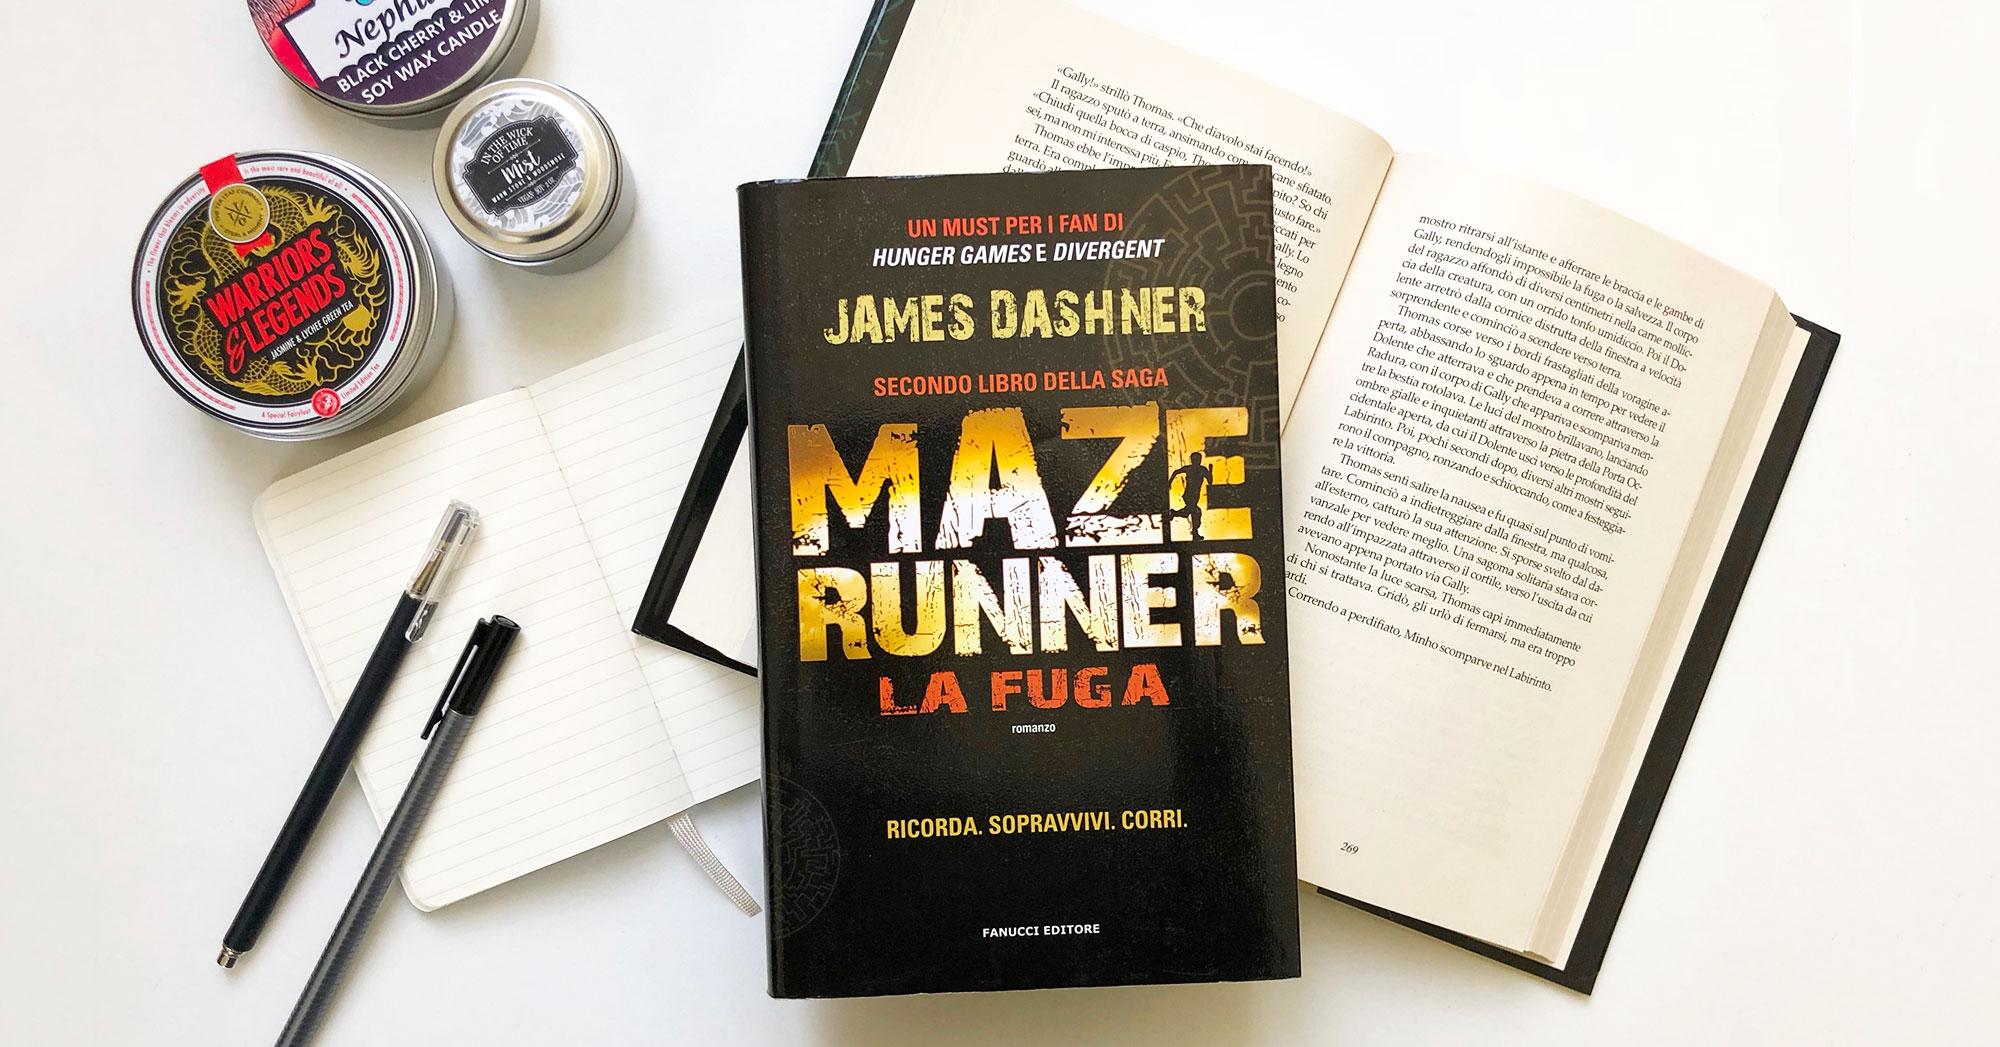 The maze runner. La fuga